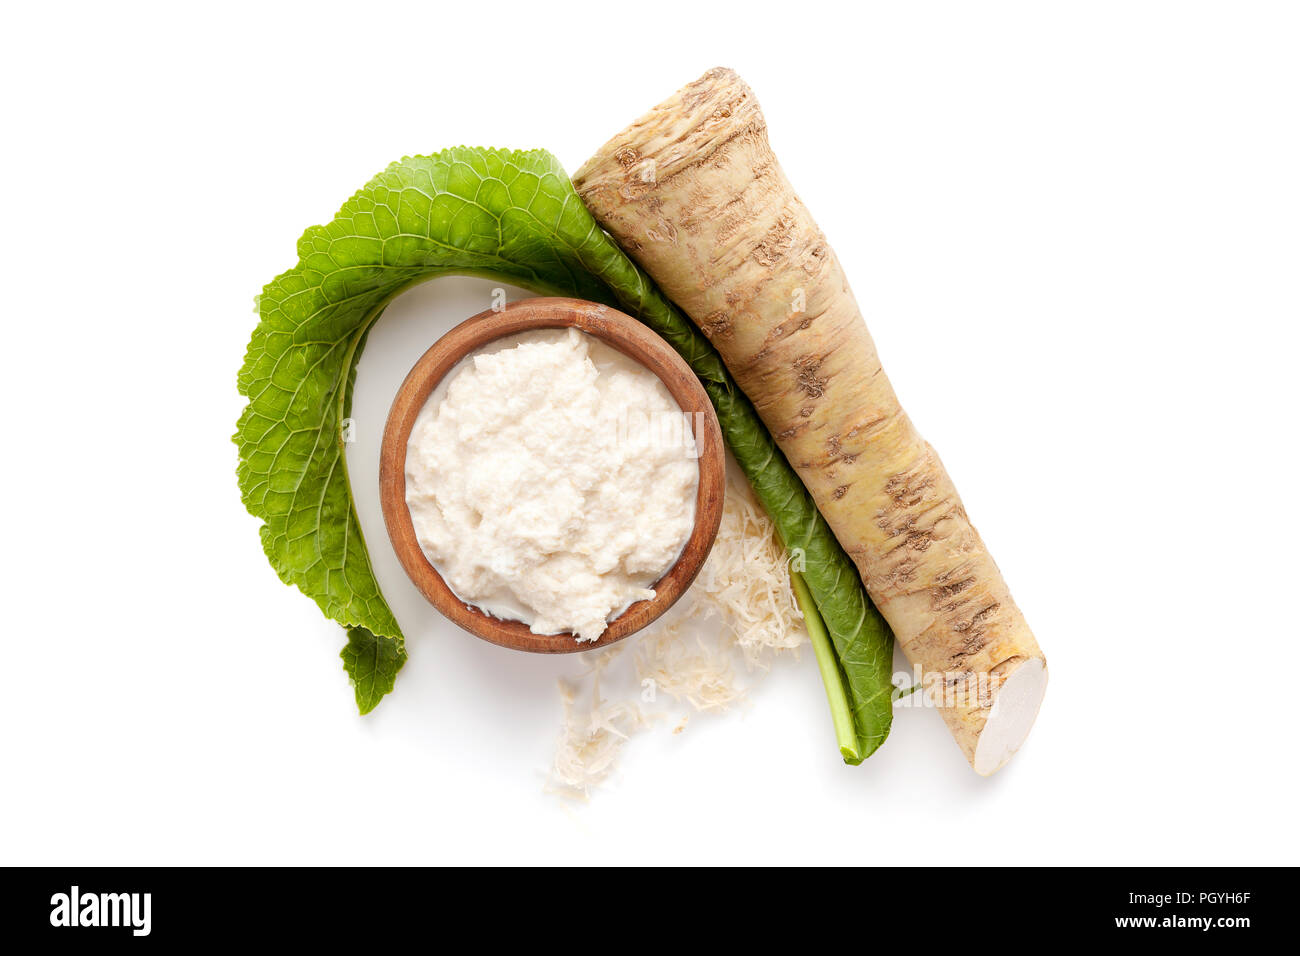 Horseradish in wooden bowl isolated on white background from above. - Stock Image